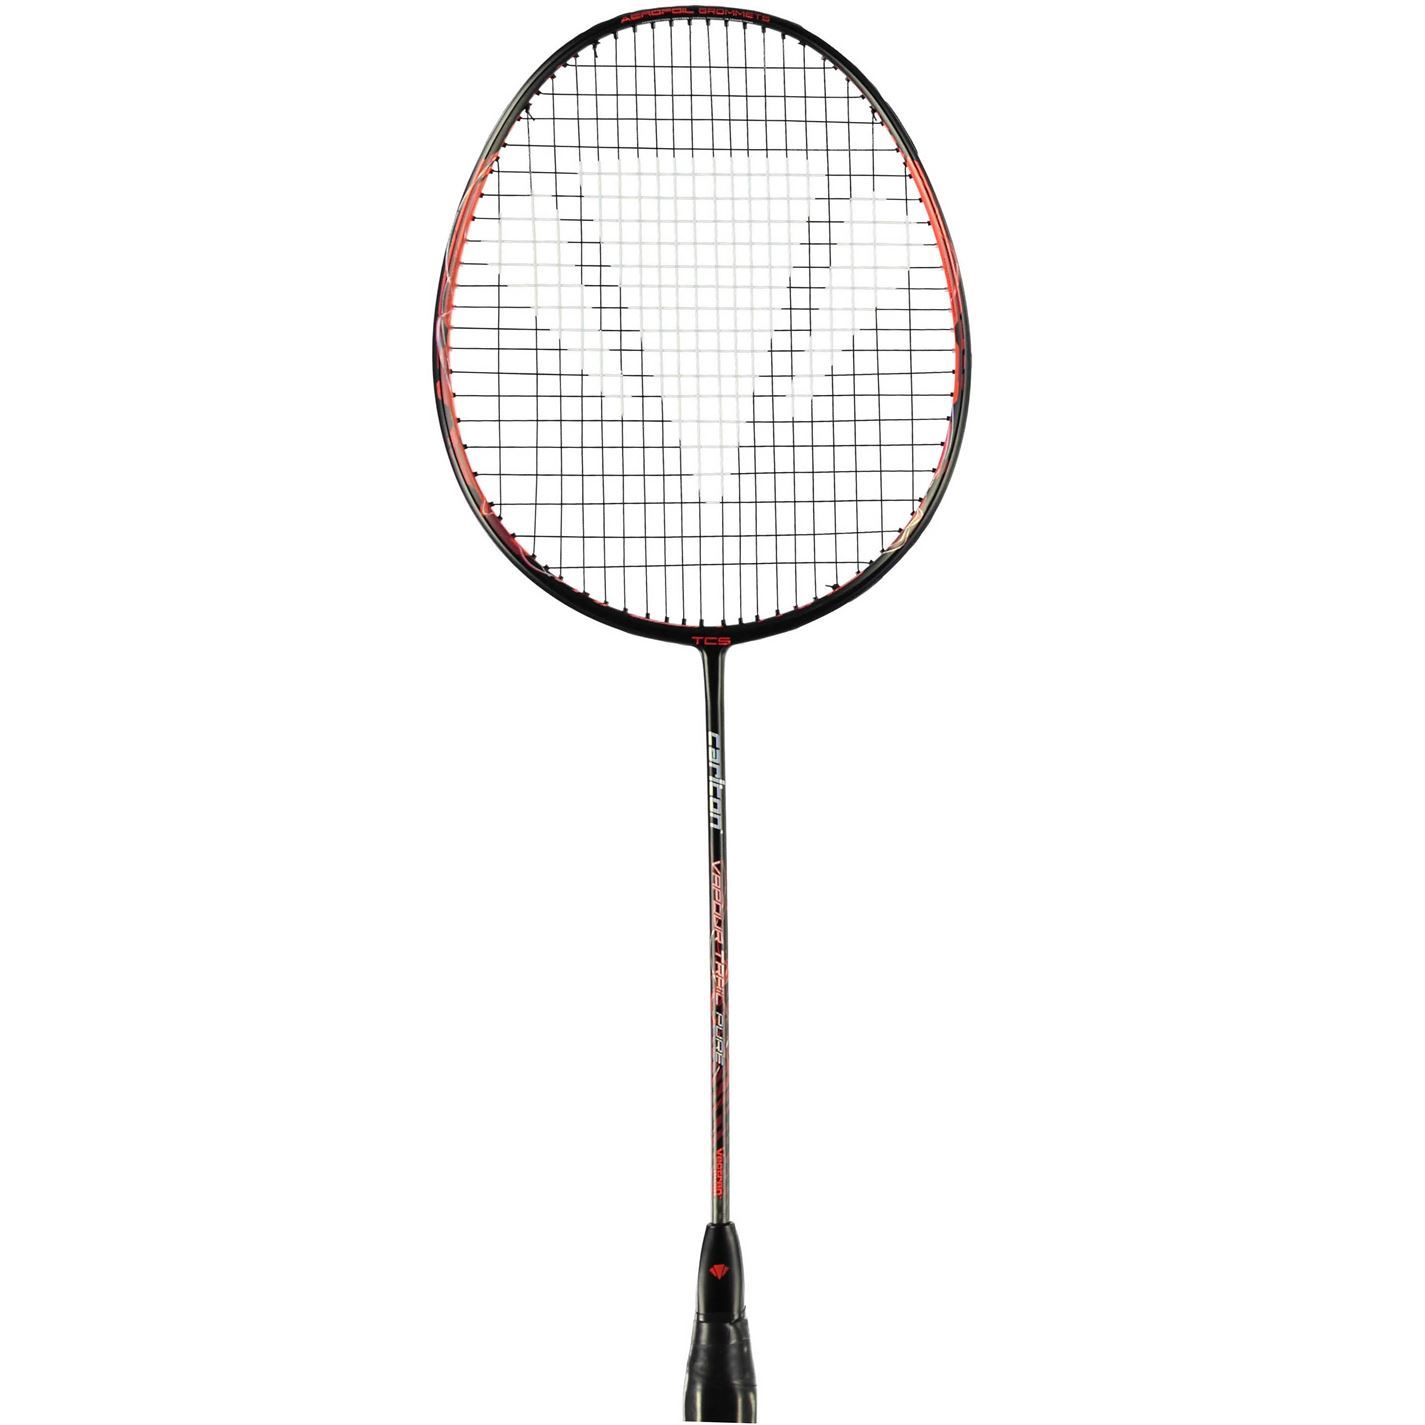 100% authentic bc098 0ad28 Carlton Vapour Trail Pure Badminton Racket Black Red Badminton Raquet